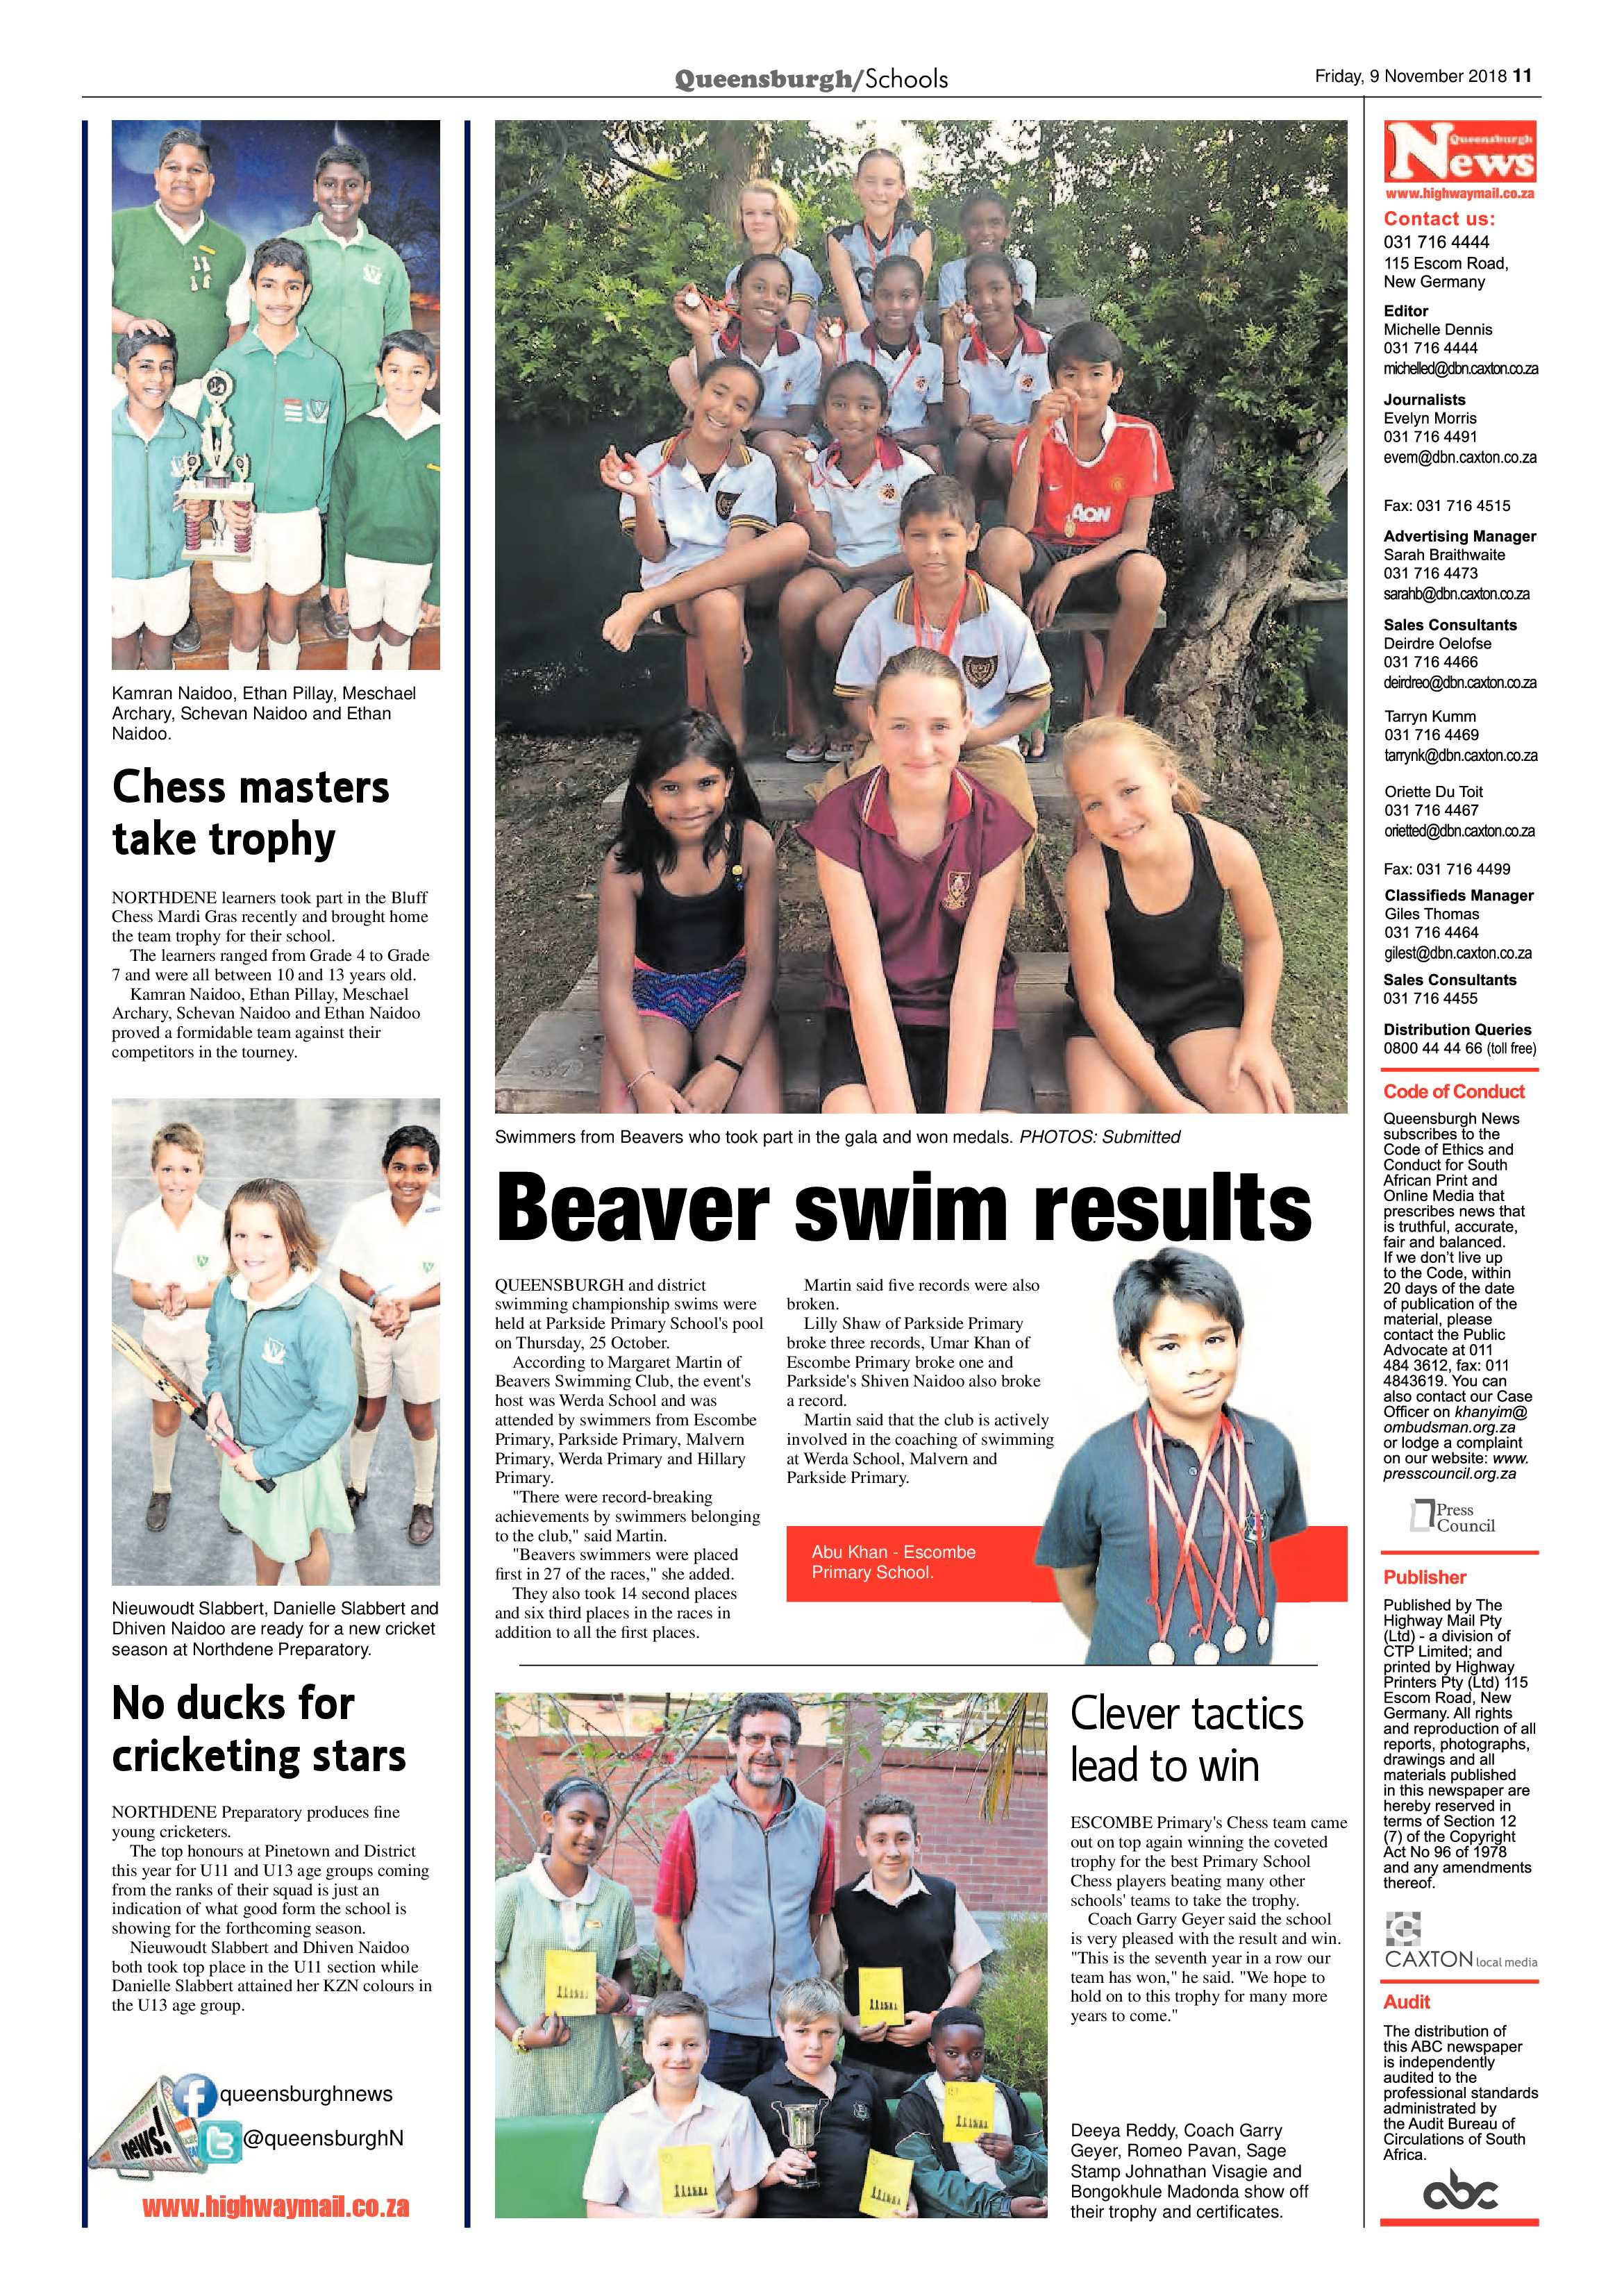 queensburgh-news-9-november-2018-epapers-page-11